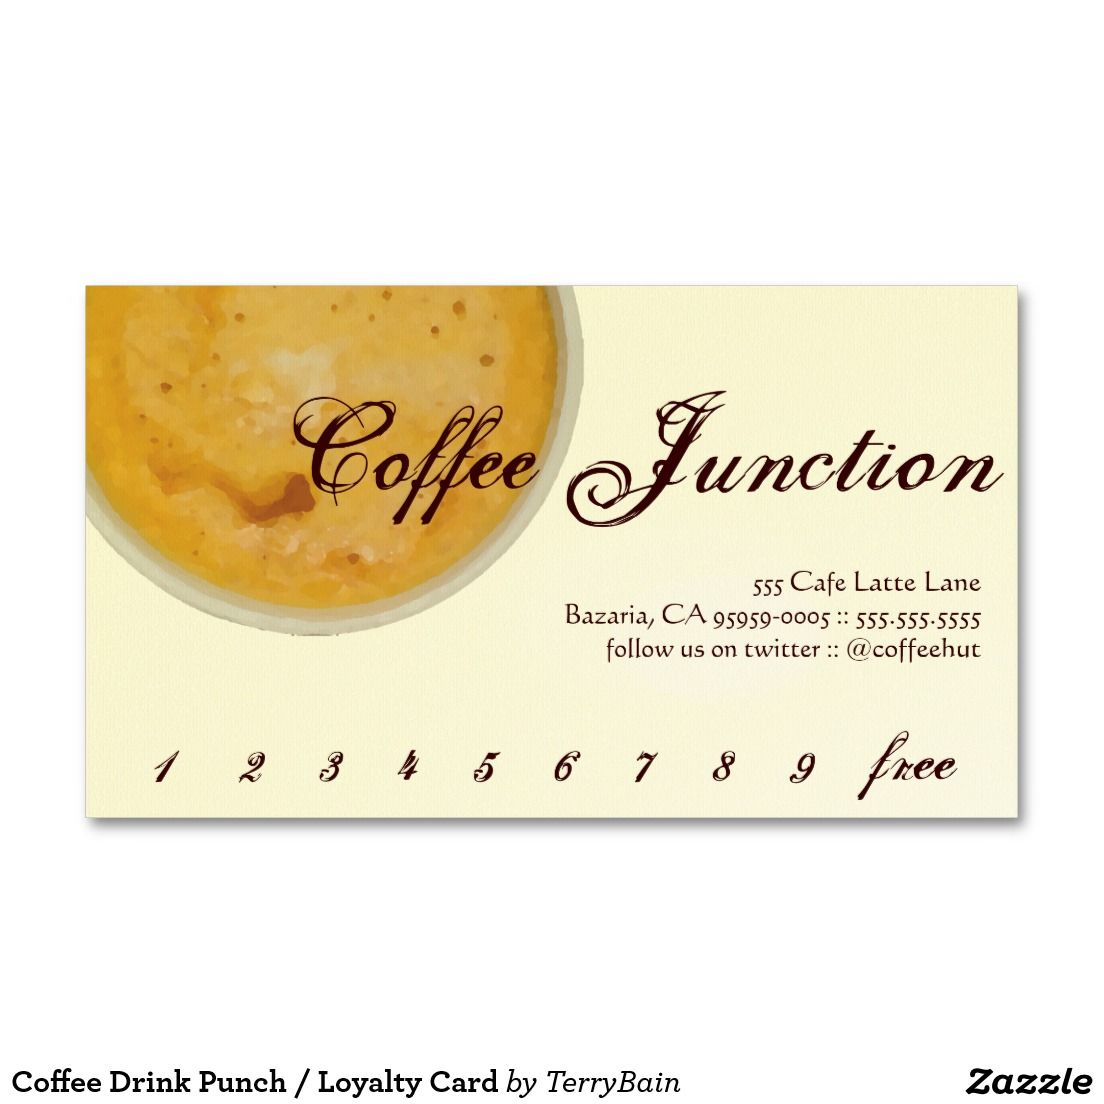 Coffee drink punch loyalty card business card loyal to coffee coffee drink punch loyalty card business card colourmoves